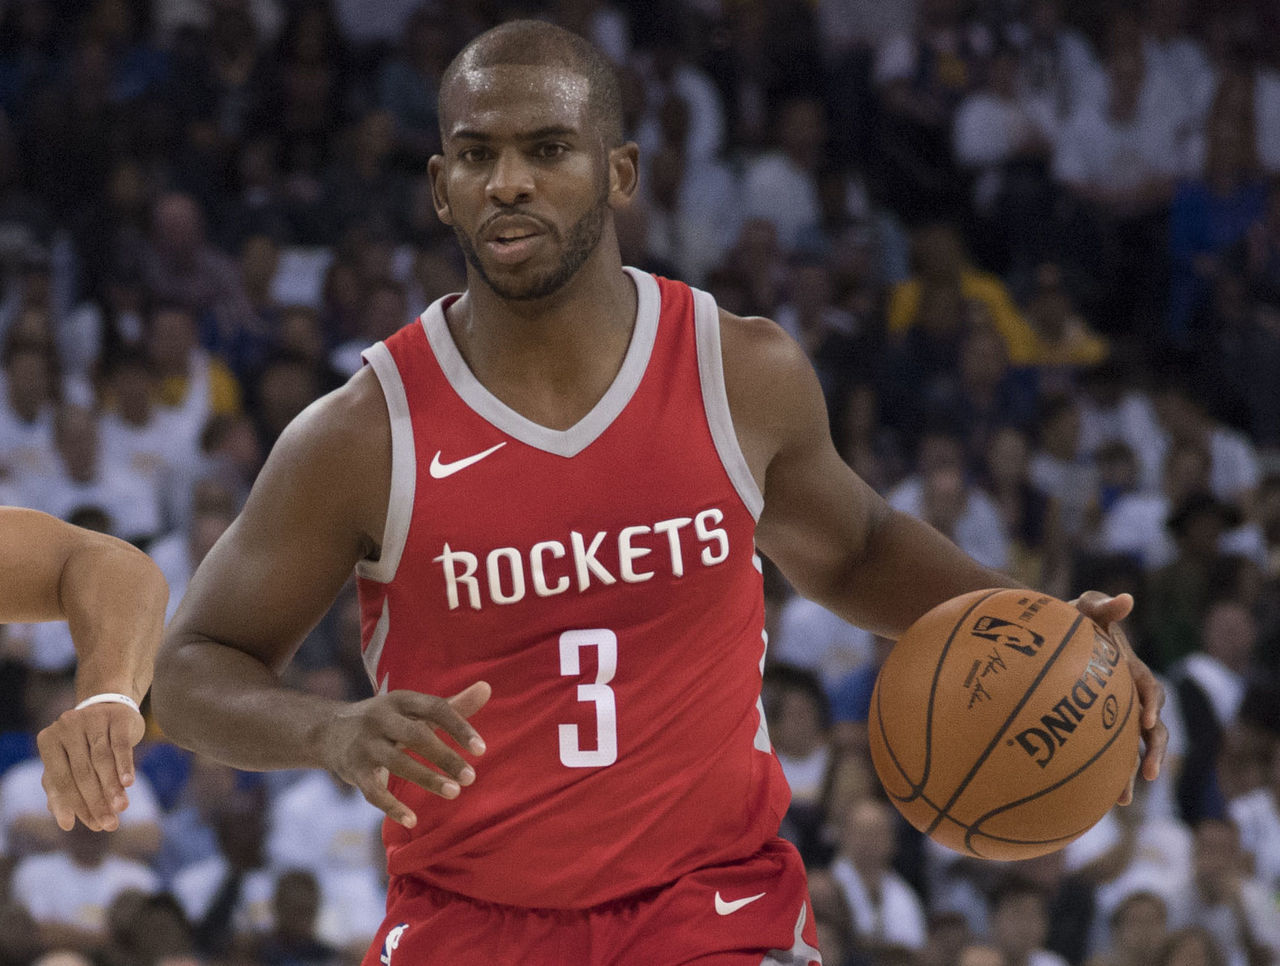 Cropped 2017 10 18t041753z 1929318729 nocid rtrmadp 3 nba houston rockets at golden state warriors